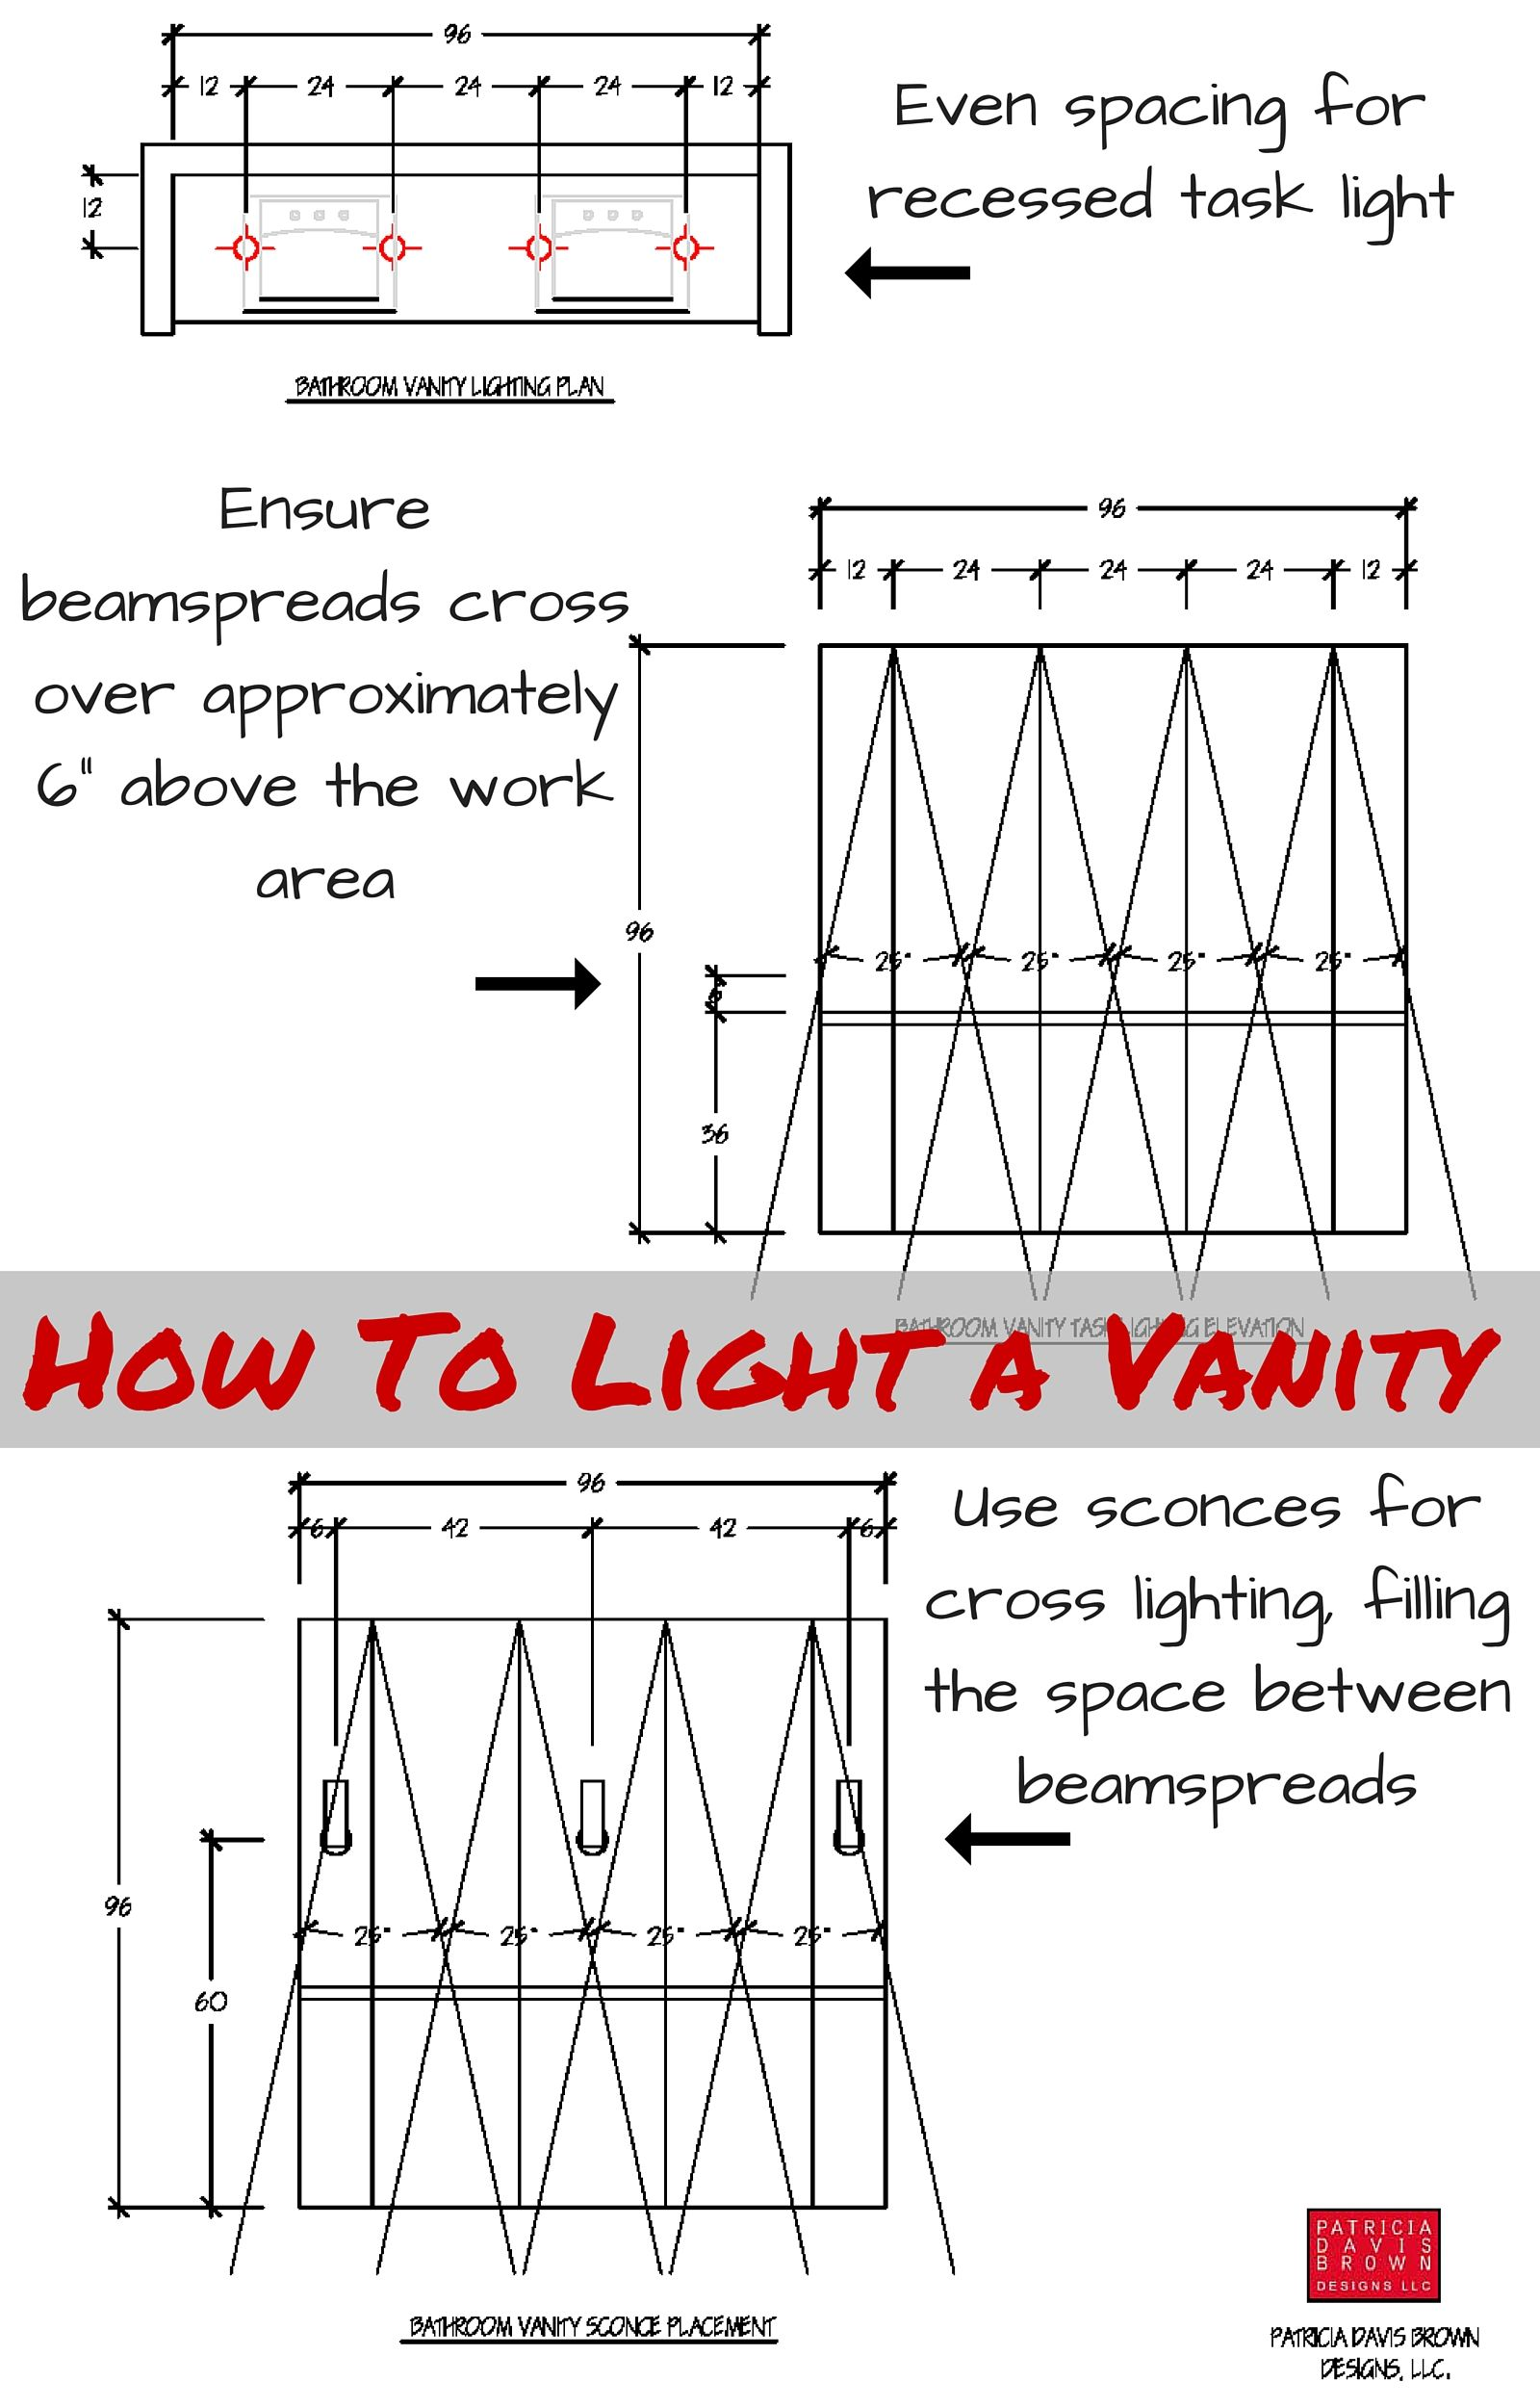 A Lighting Designeru0027s guide on how to properly light a bathroom vanity. See the article for explanations on the placement of recessed ceiling can lights and ...  sc 1 st  Pinterest & How to Light a Vanity Correctly - A Lighting Design How To ...